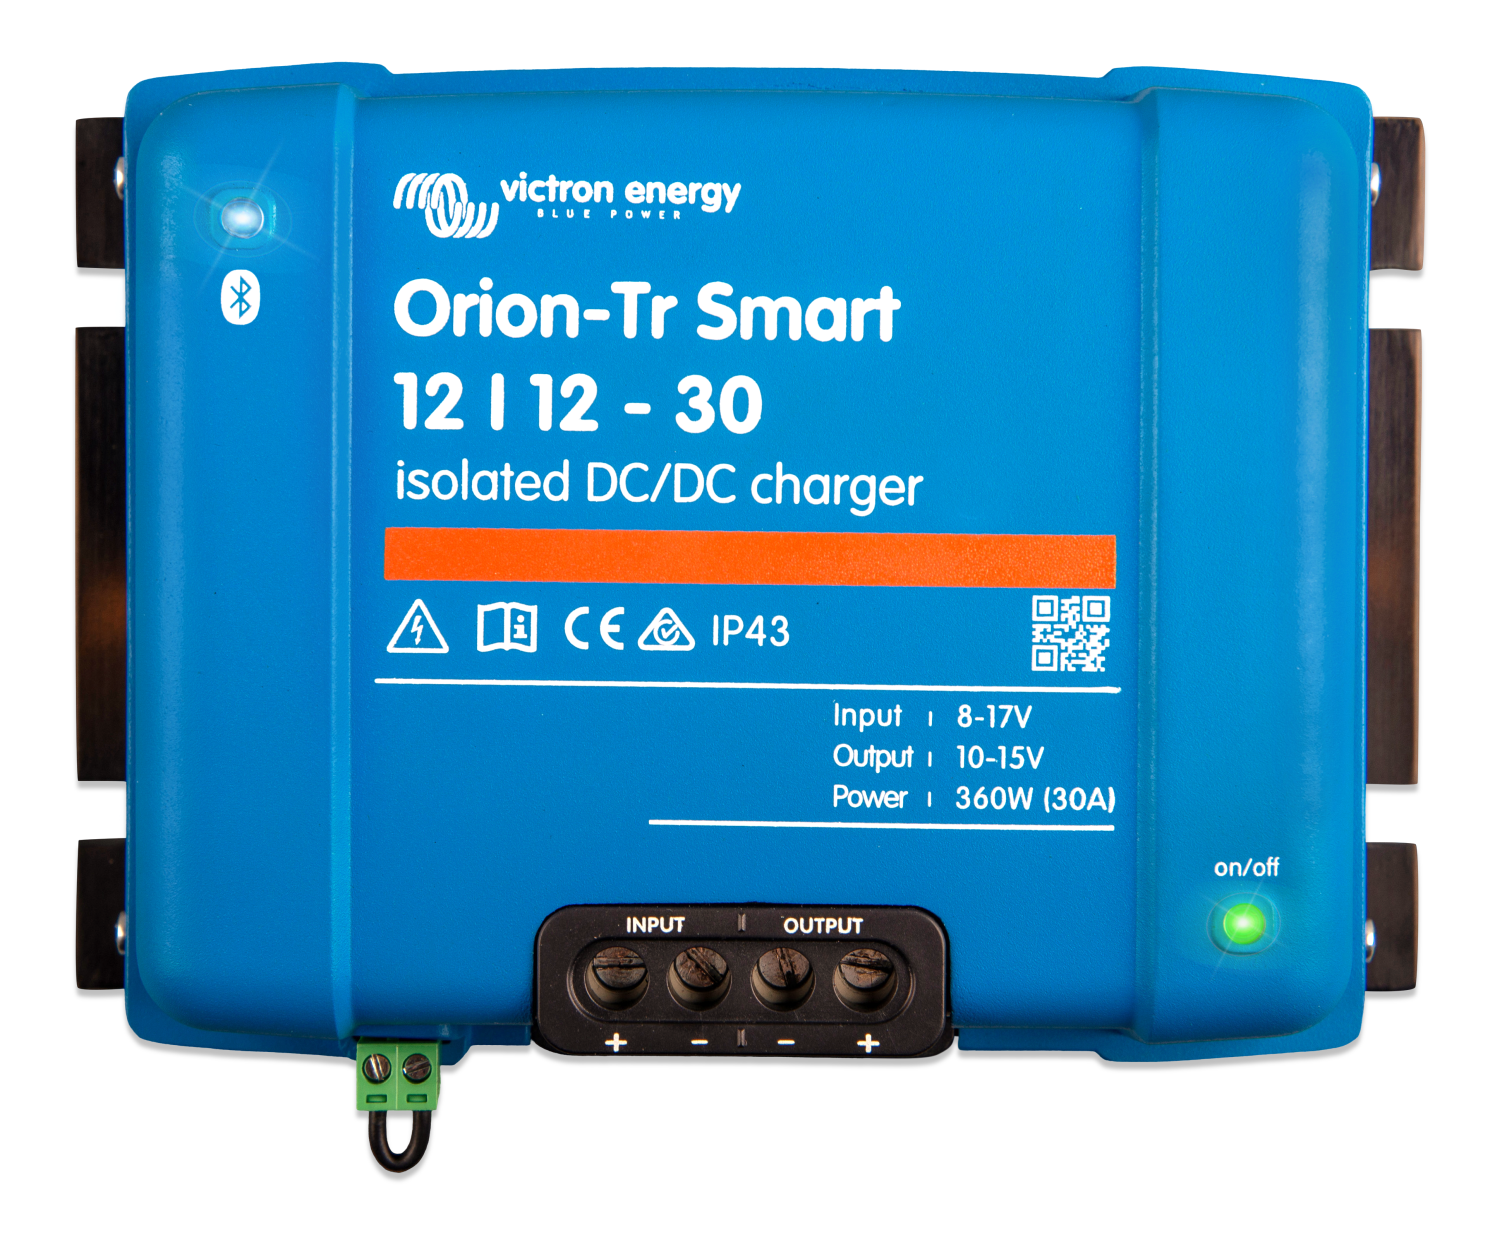 New Product: Orion-Tr Smart DC-DC charger